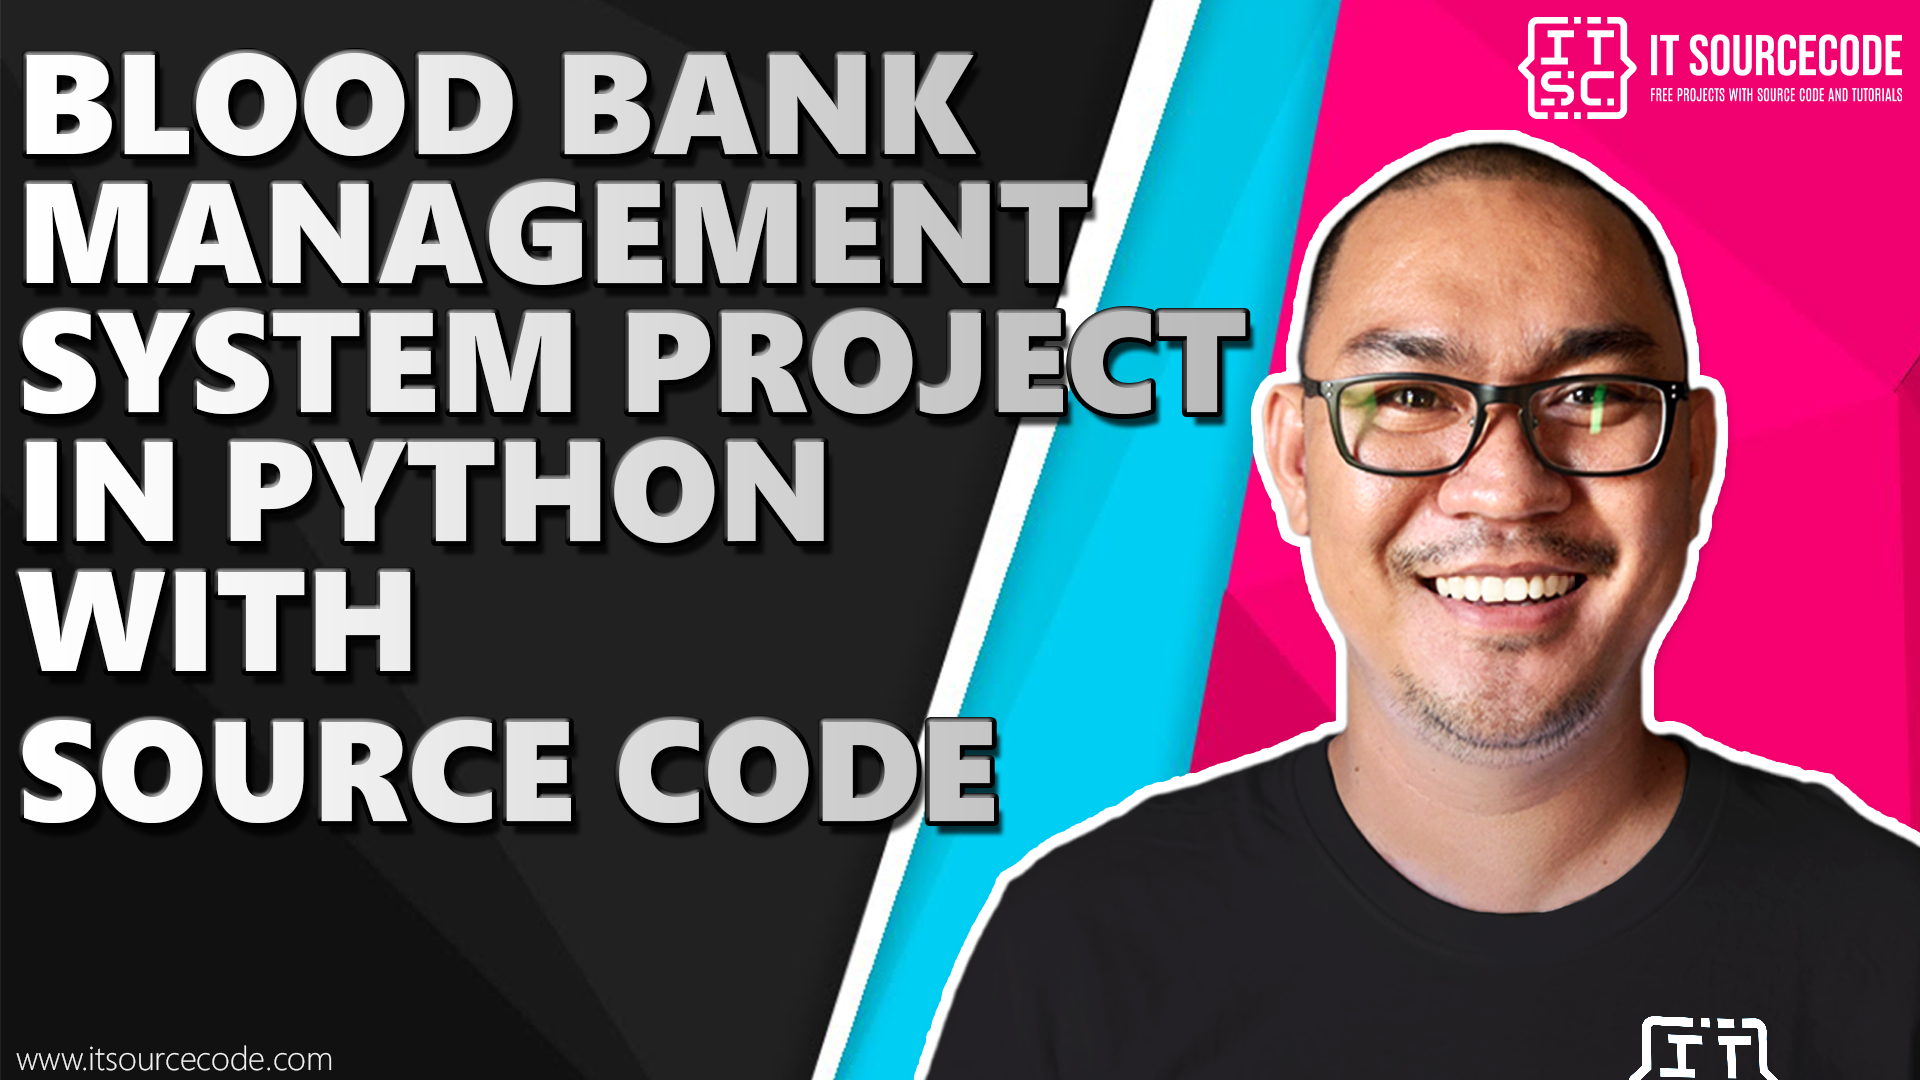 blood bank management system project in python with source code